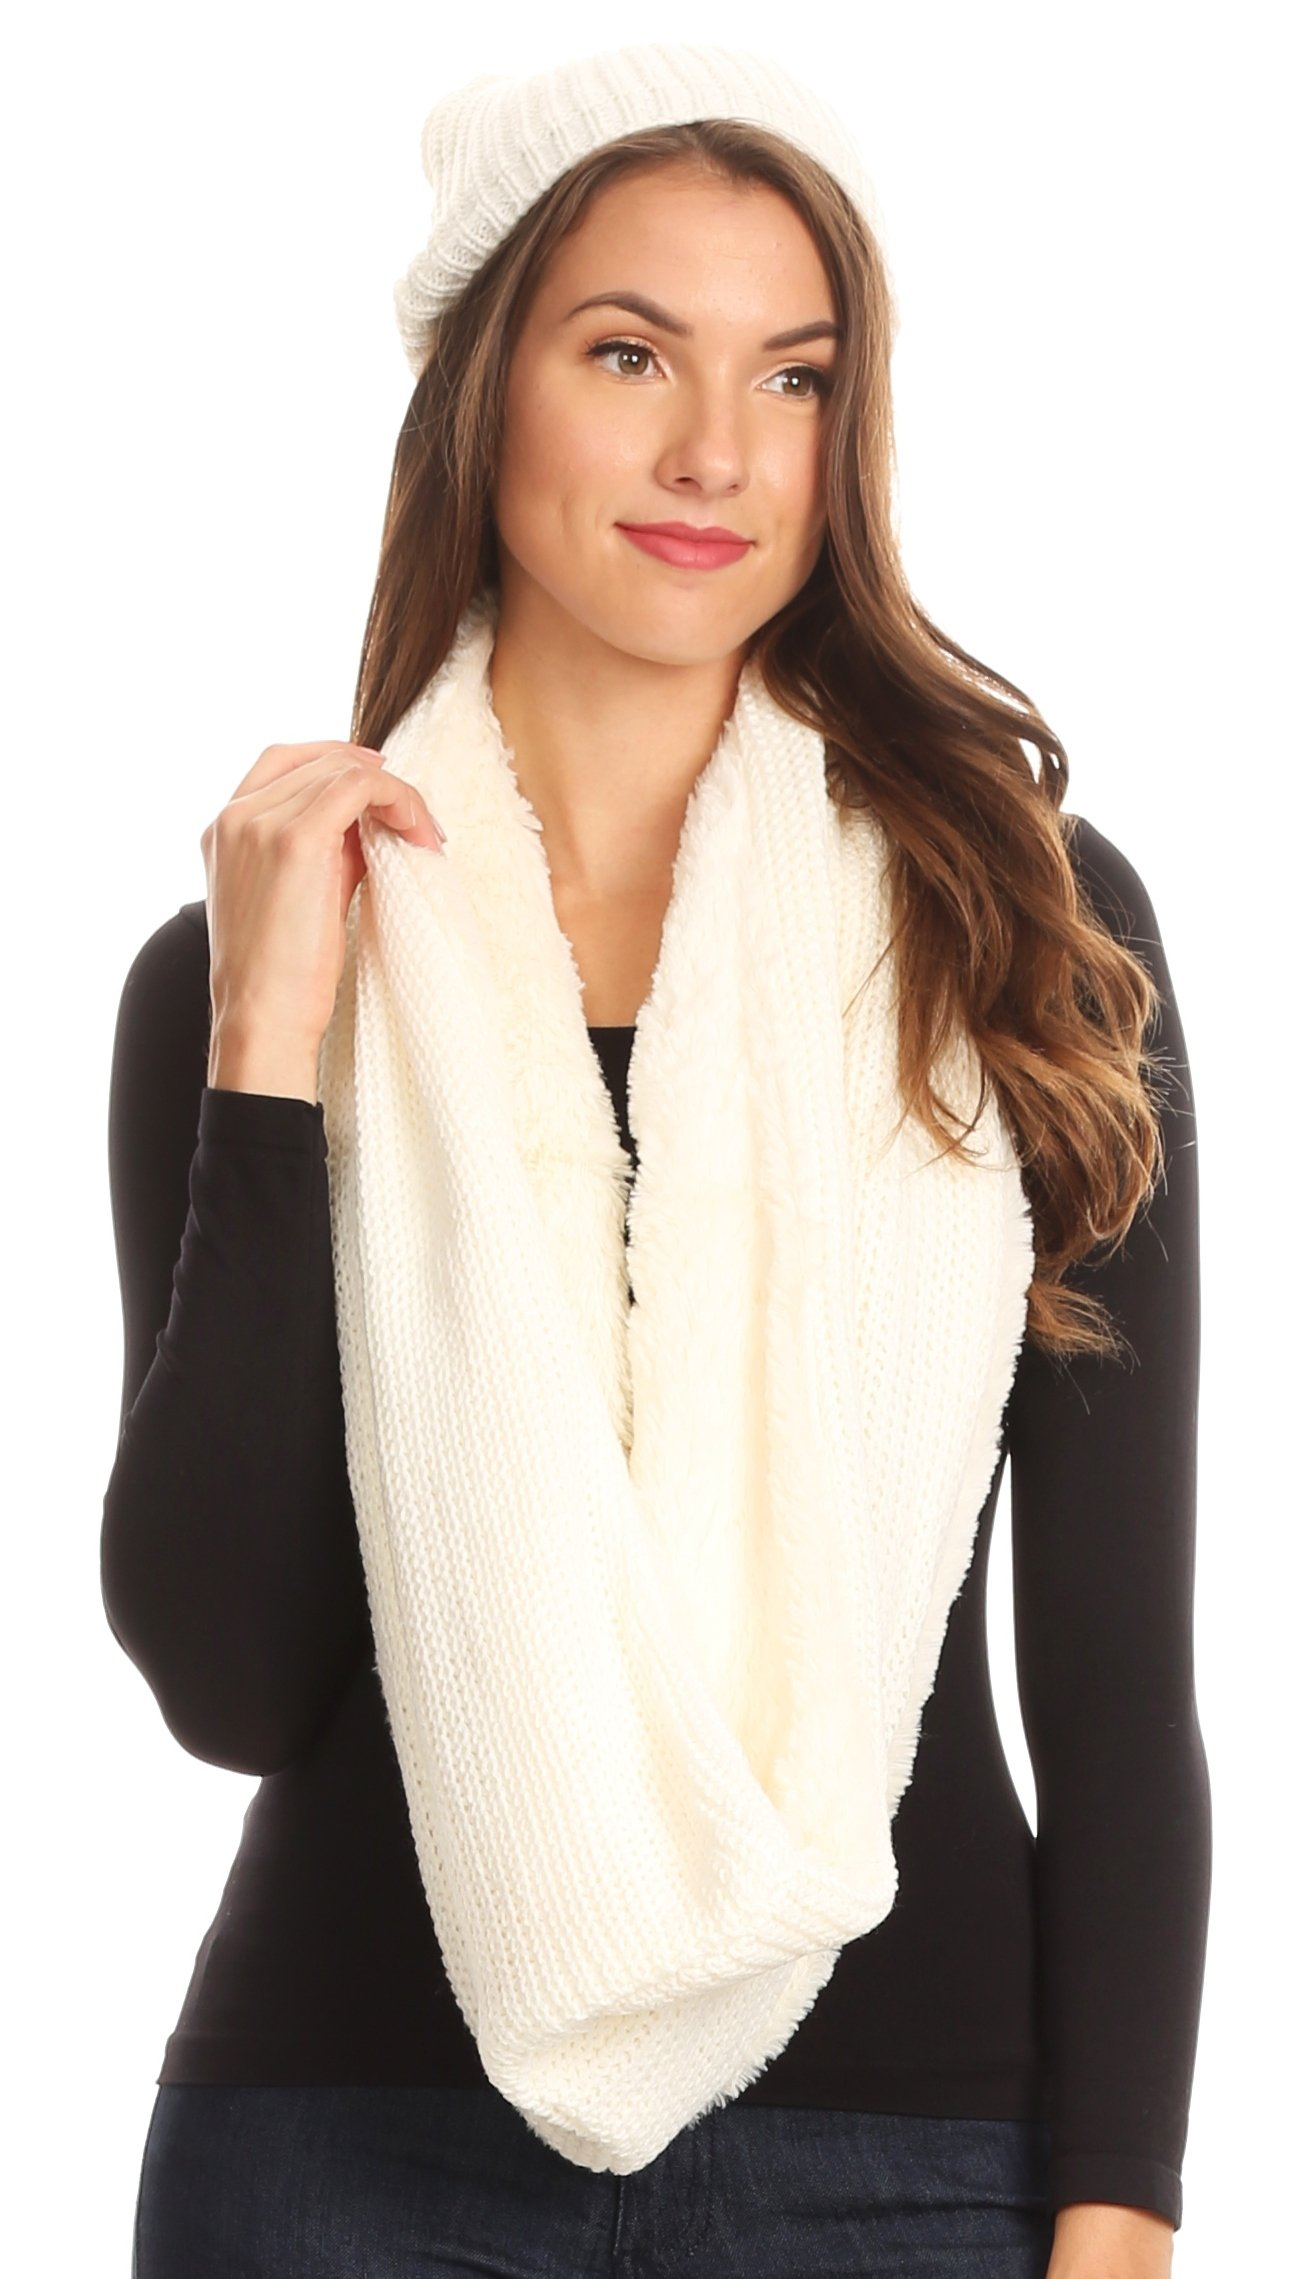 Sakkas 16139 - Balencia Cool Girl Long Wide Soft Fur Lined Infinity Scarf Beanie Hat Set - White - OS